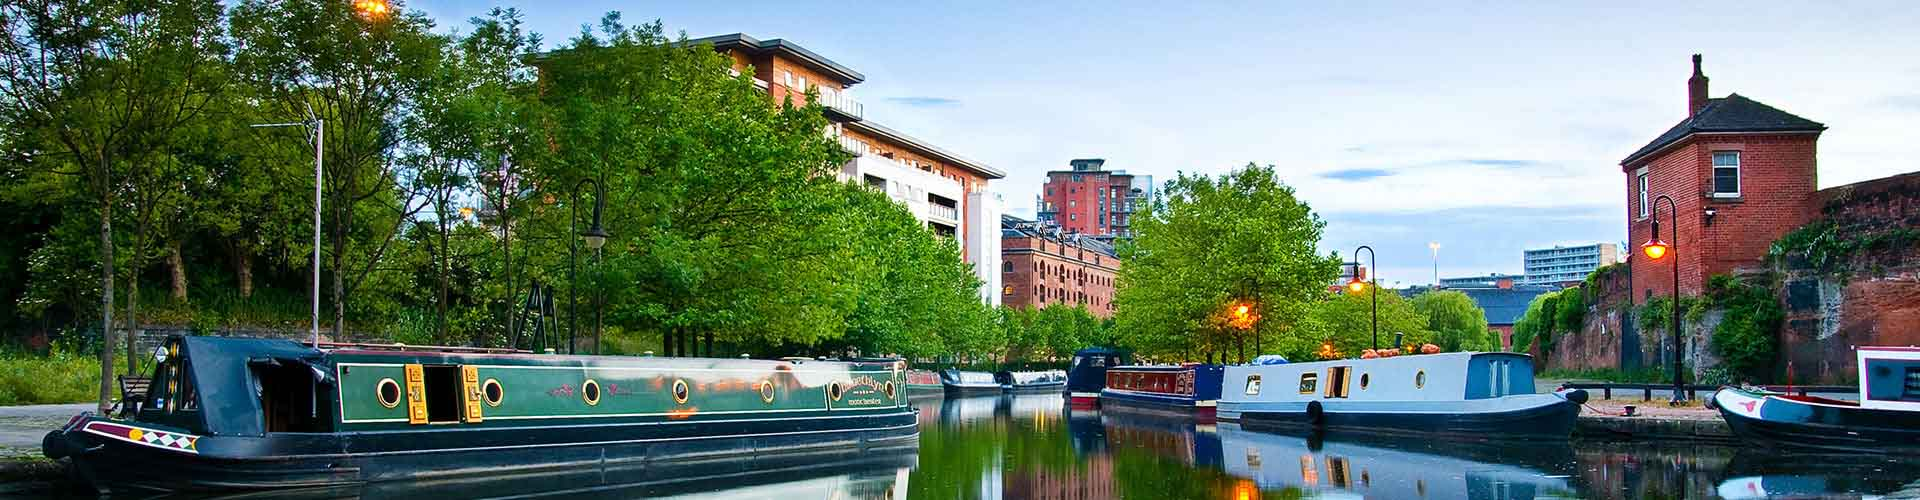 Manchester – Cheap Rooms in North Central Manchester. Maps of Manchester, Photos and Reviews for each cheap room in Manchester.